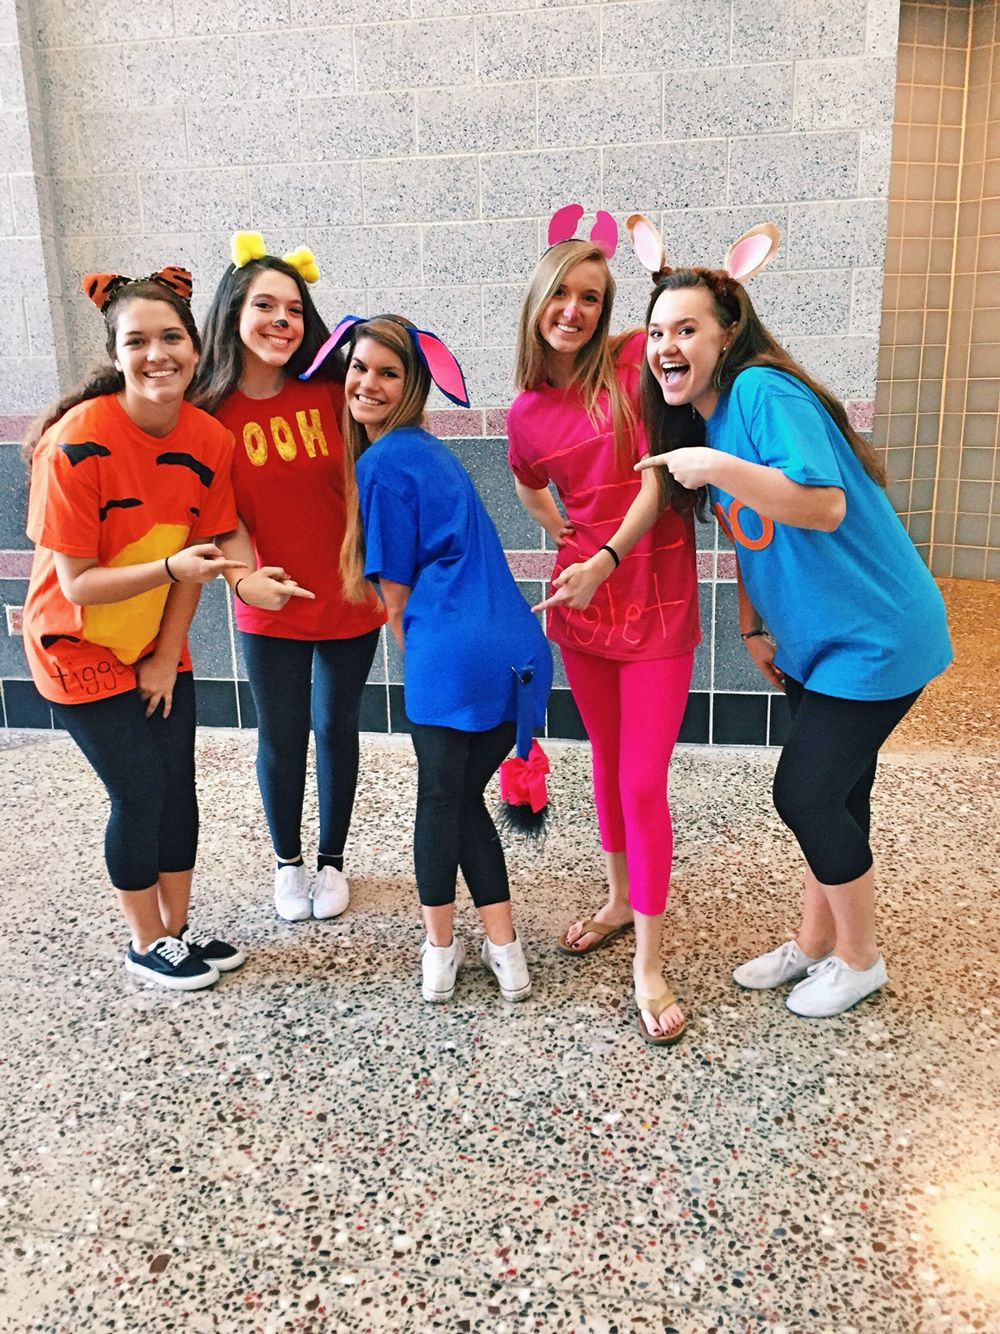 Best ideas about DIY Winnie The Pooh Costume . Save or Pin Winnie the Pooh character costumes Spirit week Now.